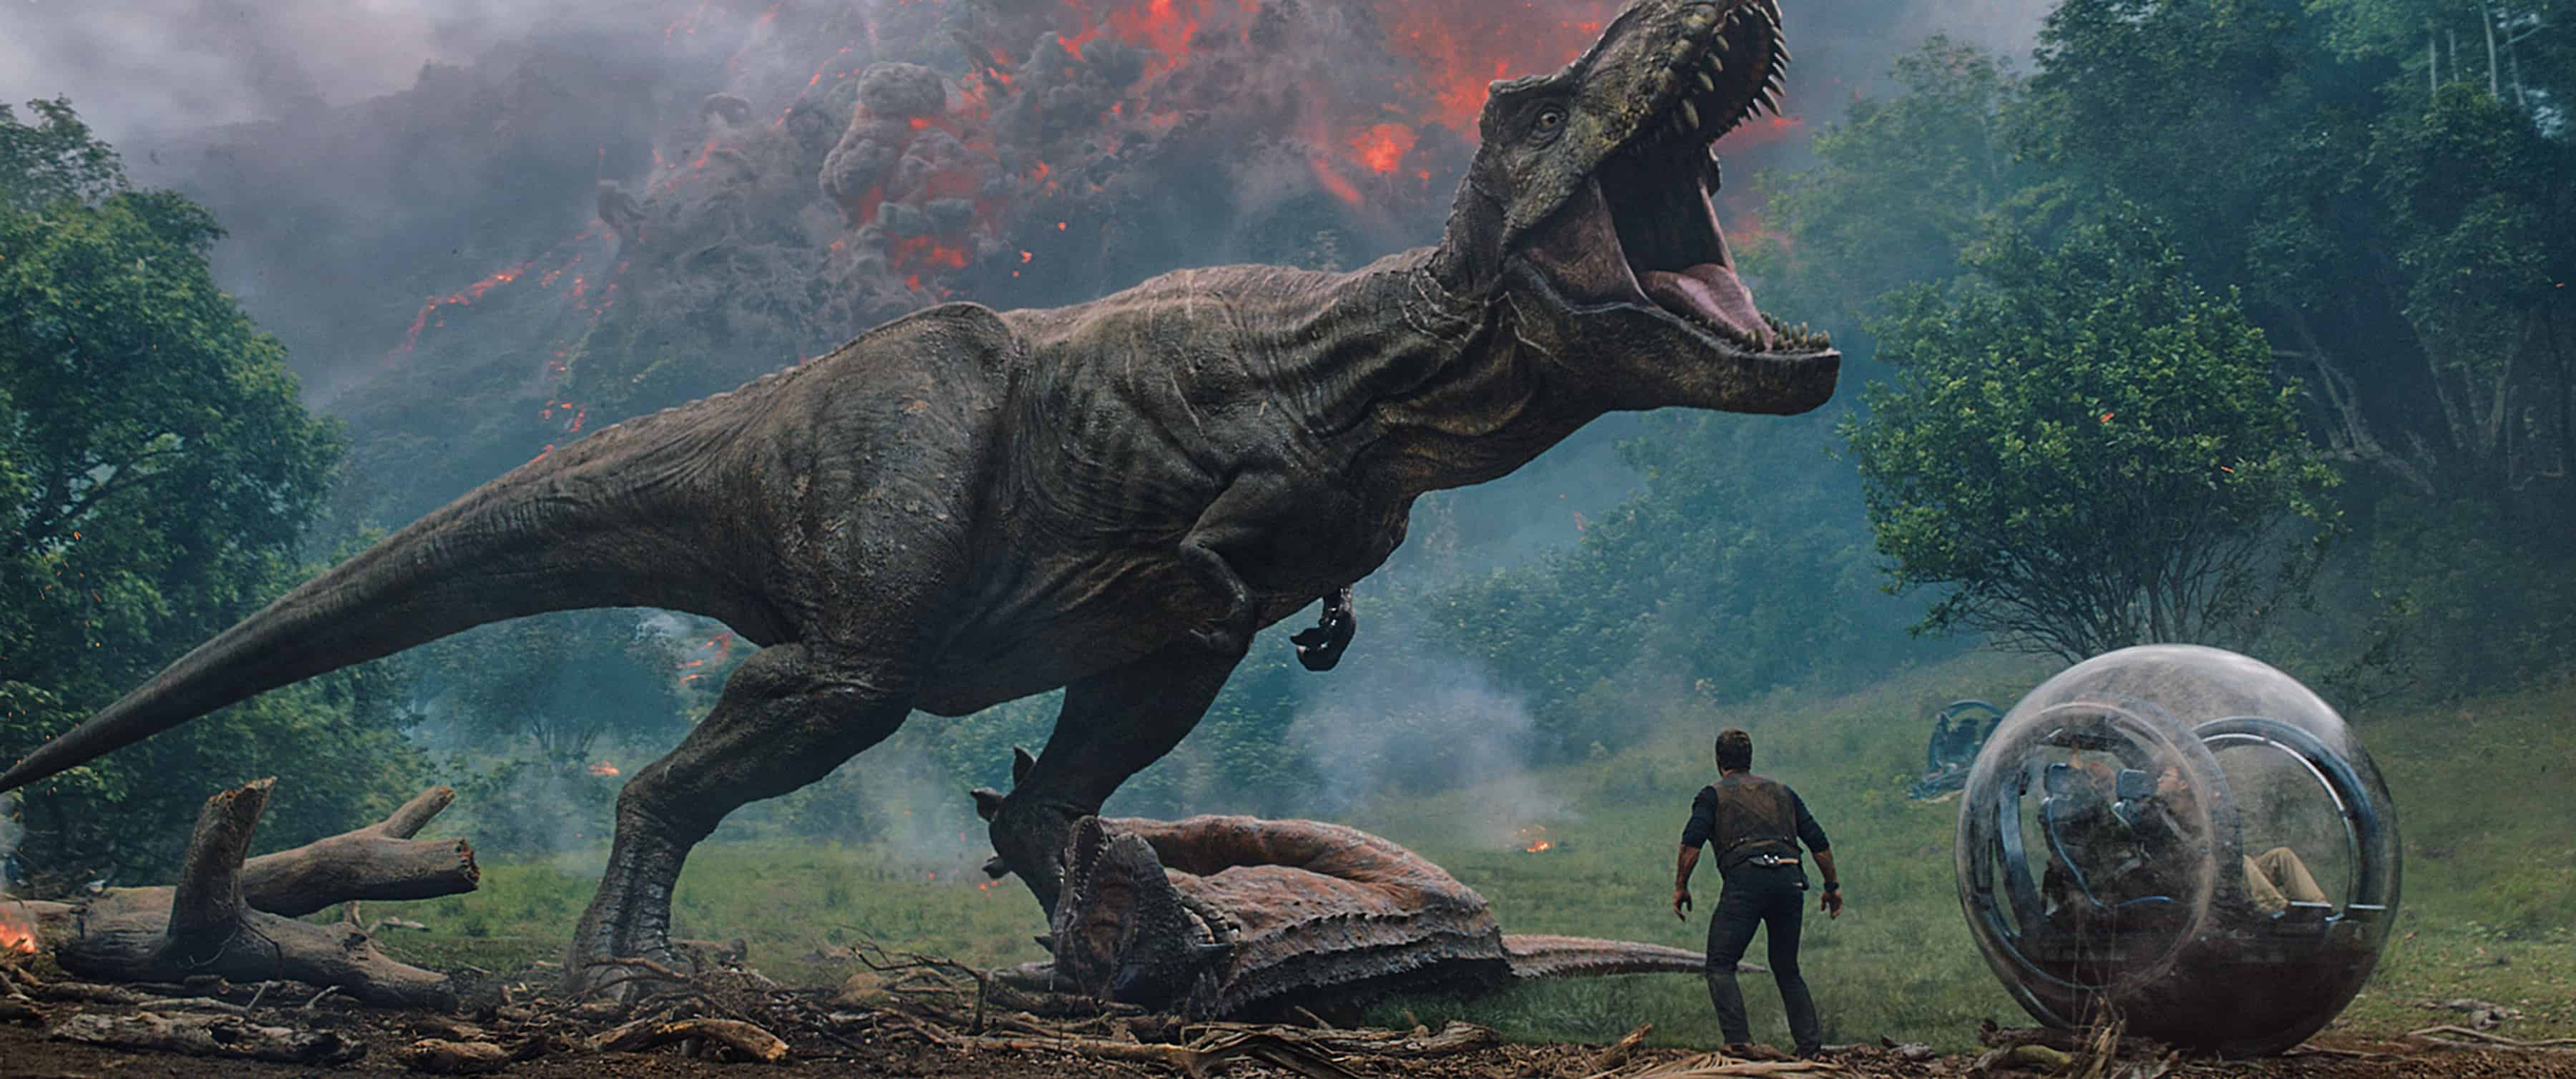 Jurassic Park and the Problem of Ambition